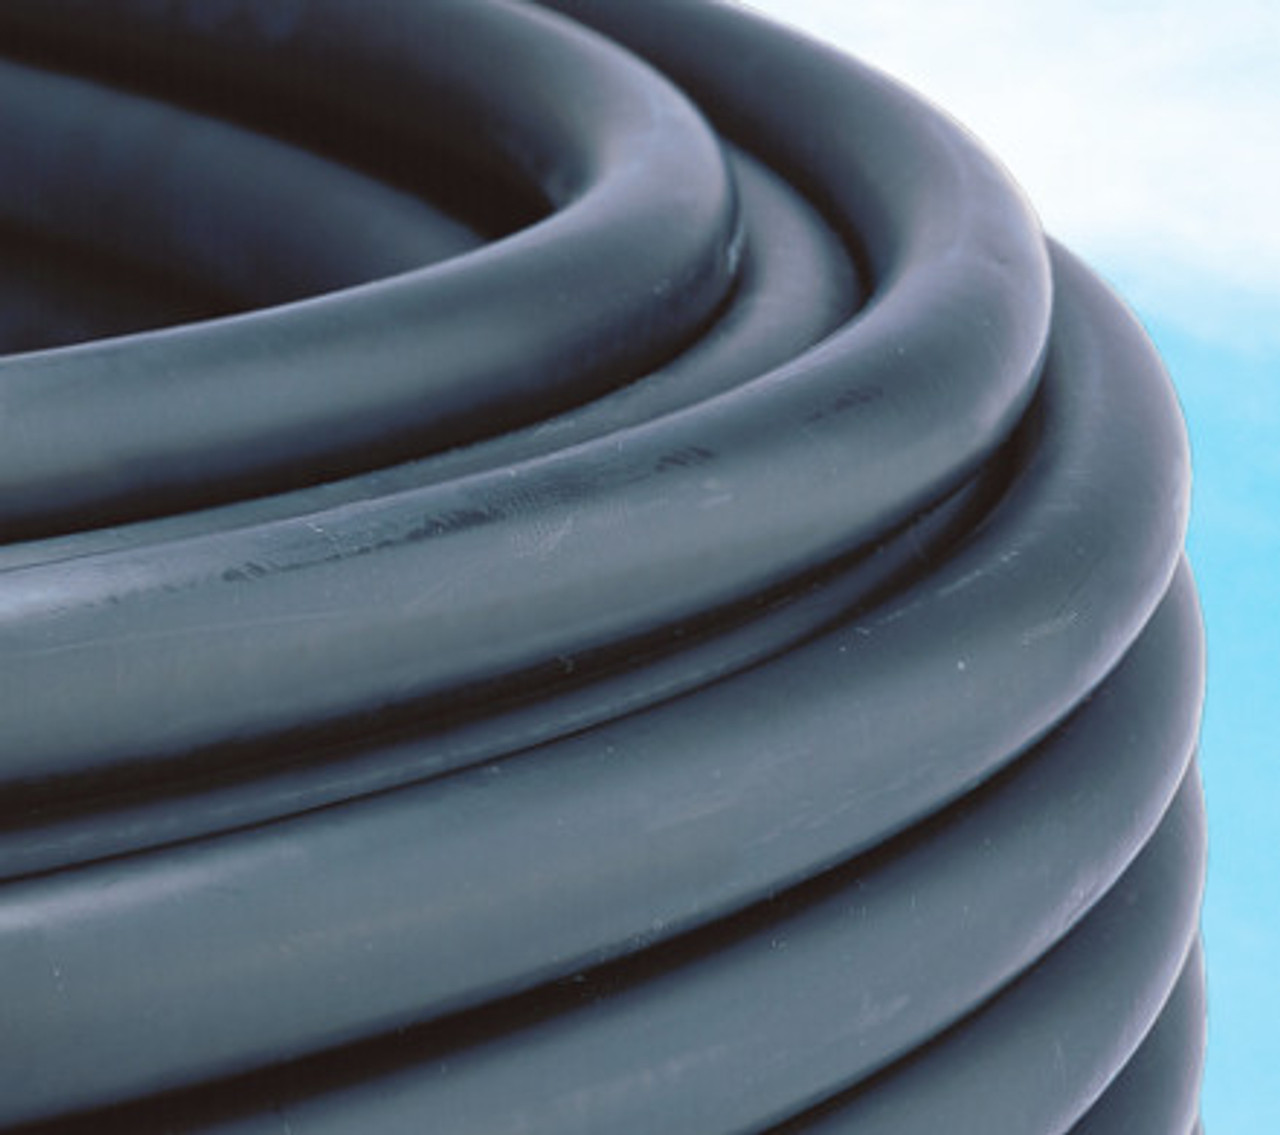 CENFUSE HDPE 4710 Geothermal Pipe Coils - SDR 11 - 200 PSI